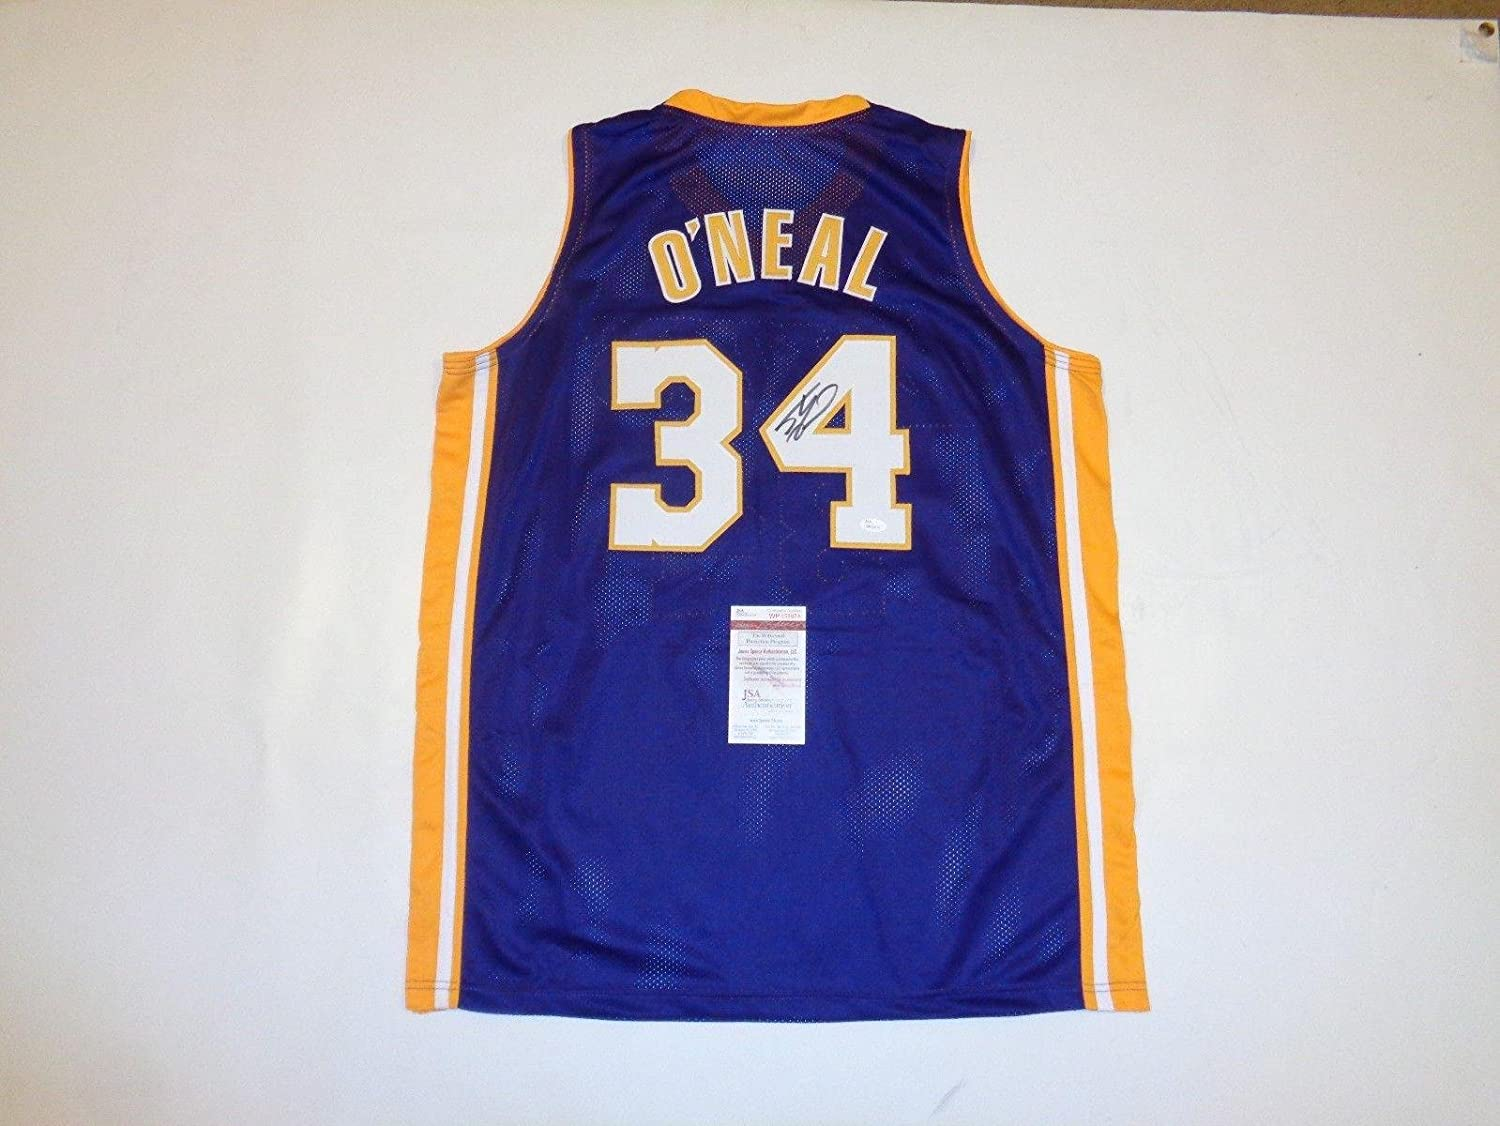 a8789c6e7 Amazon.com  SHAQUILLE O NEAL signed autographed Lakers purple Jersey  Witness - JSA Certified - Autographed NBA Jerseys  Sports Collectibles